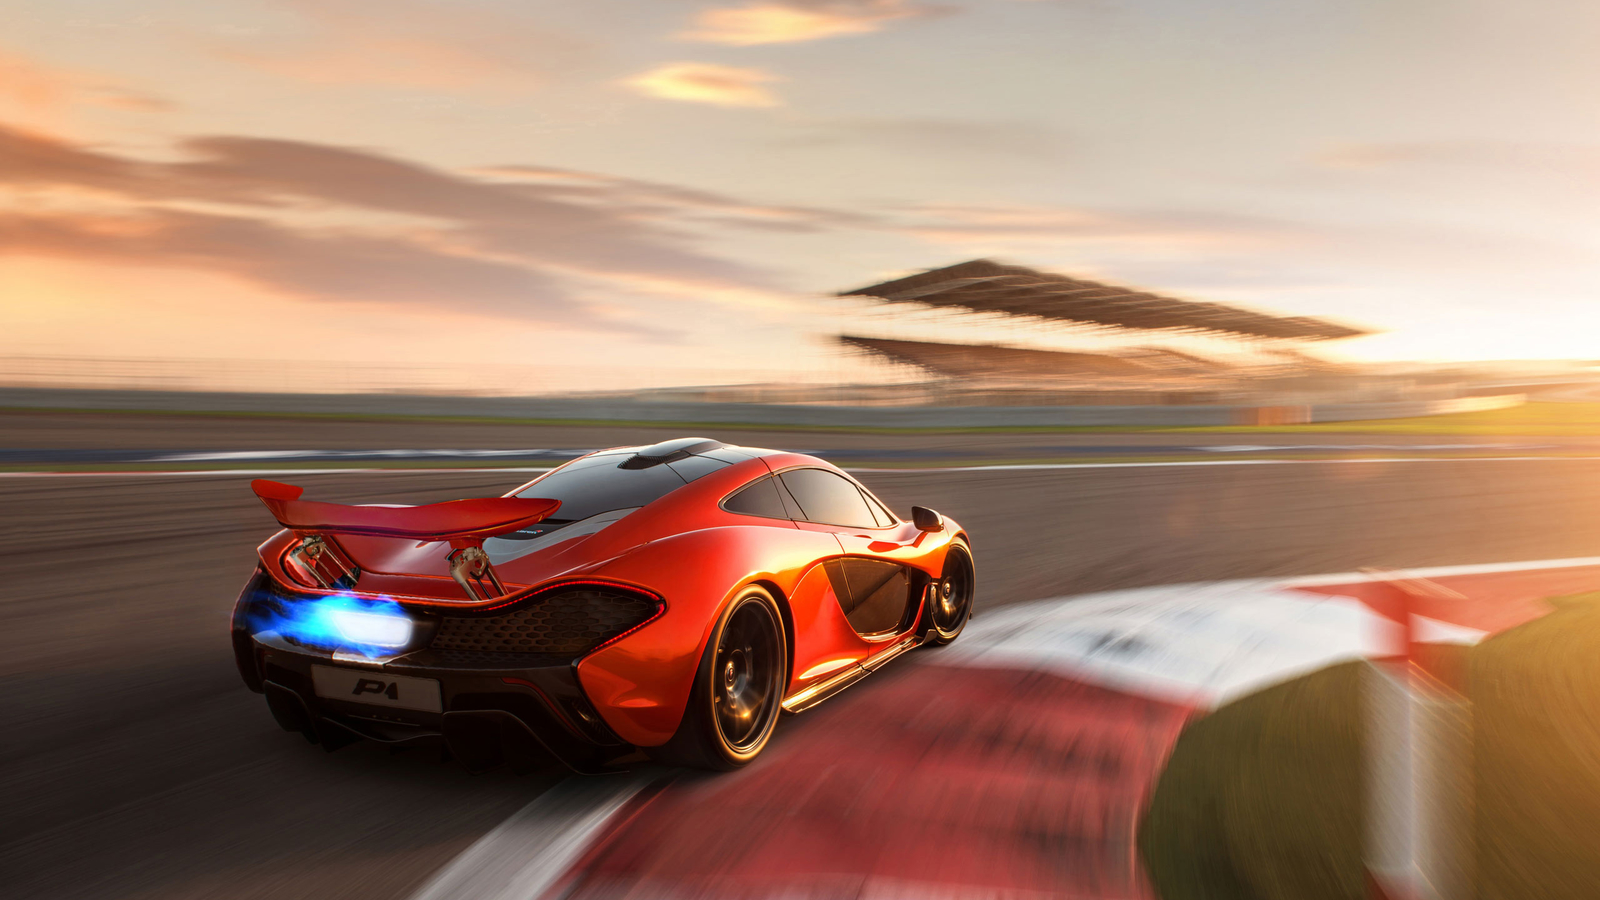 McLaren supercar wallpaper download 49766 - Automotive Wallpapers ...